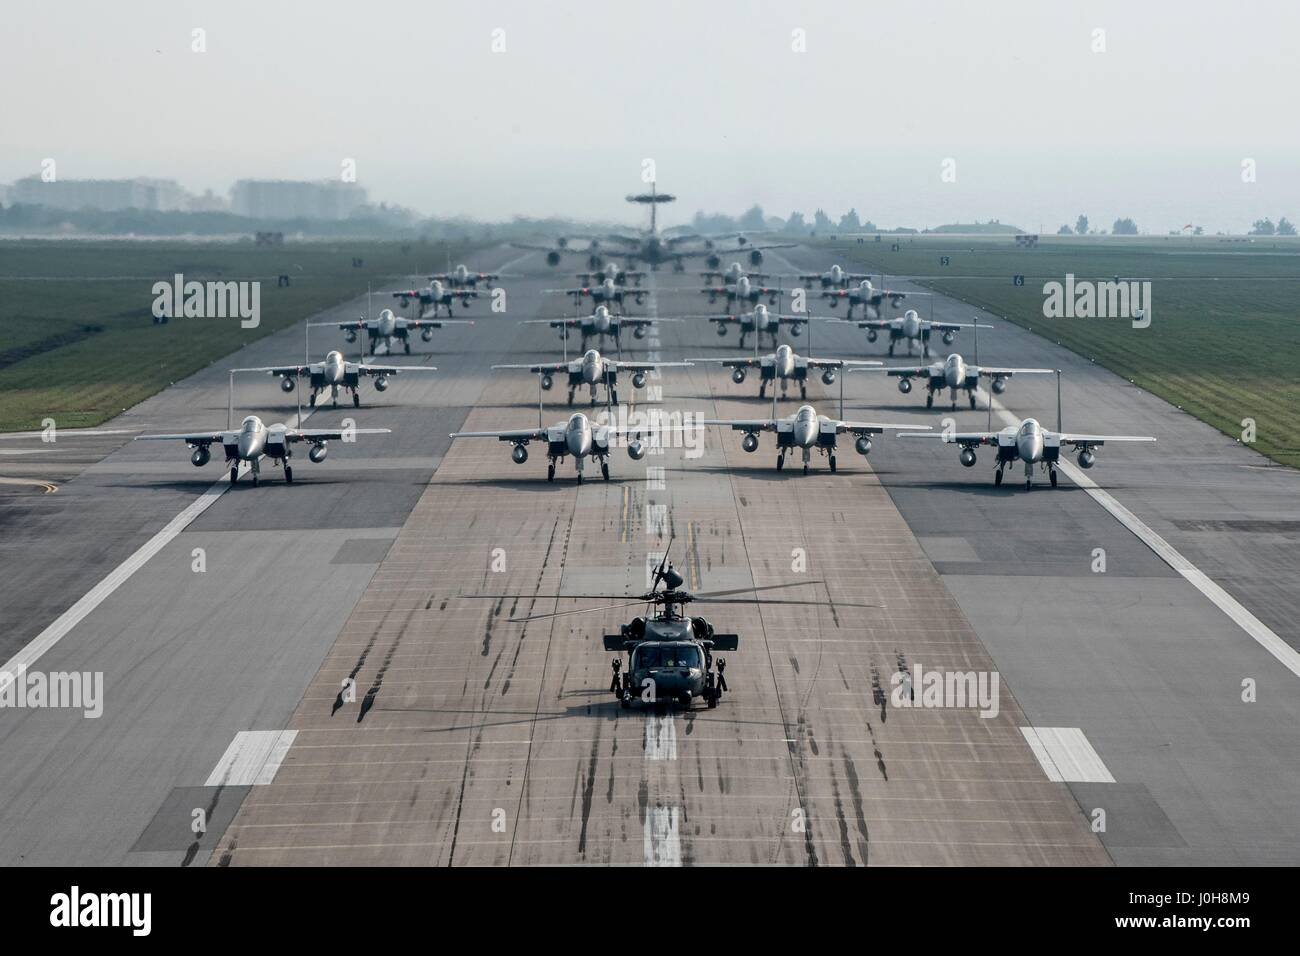 U.S. Air Force 18th Wing taxis down the runway with combat ready HH-60 Pave Hawks, F-15 Eagles, E-3 Sentries and - Stock Image